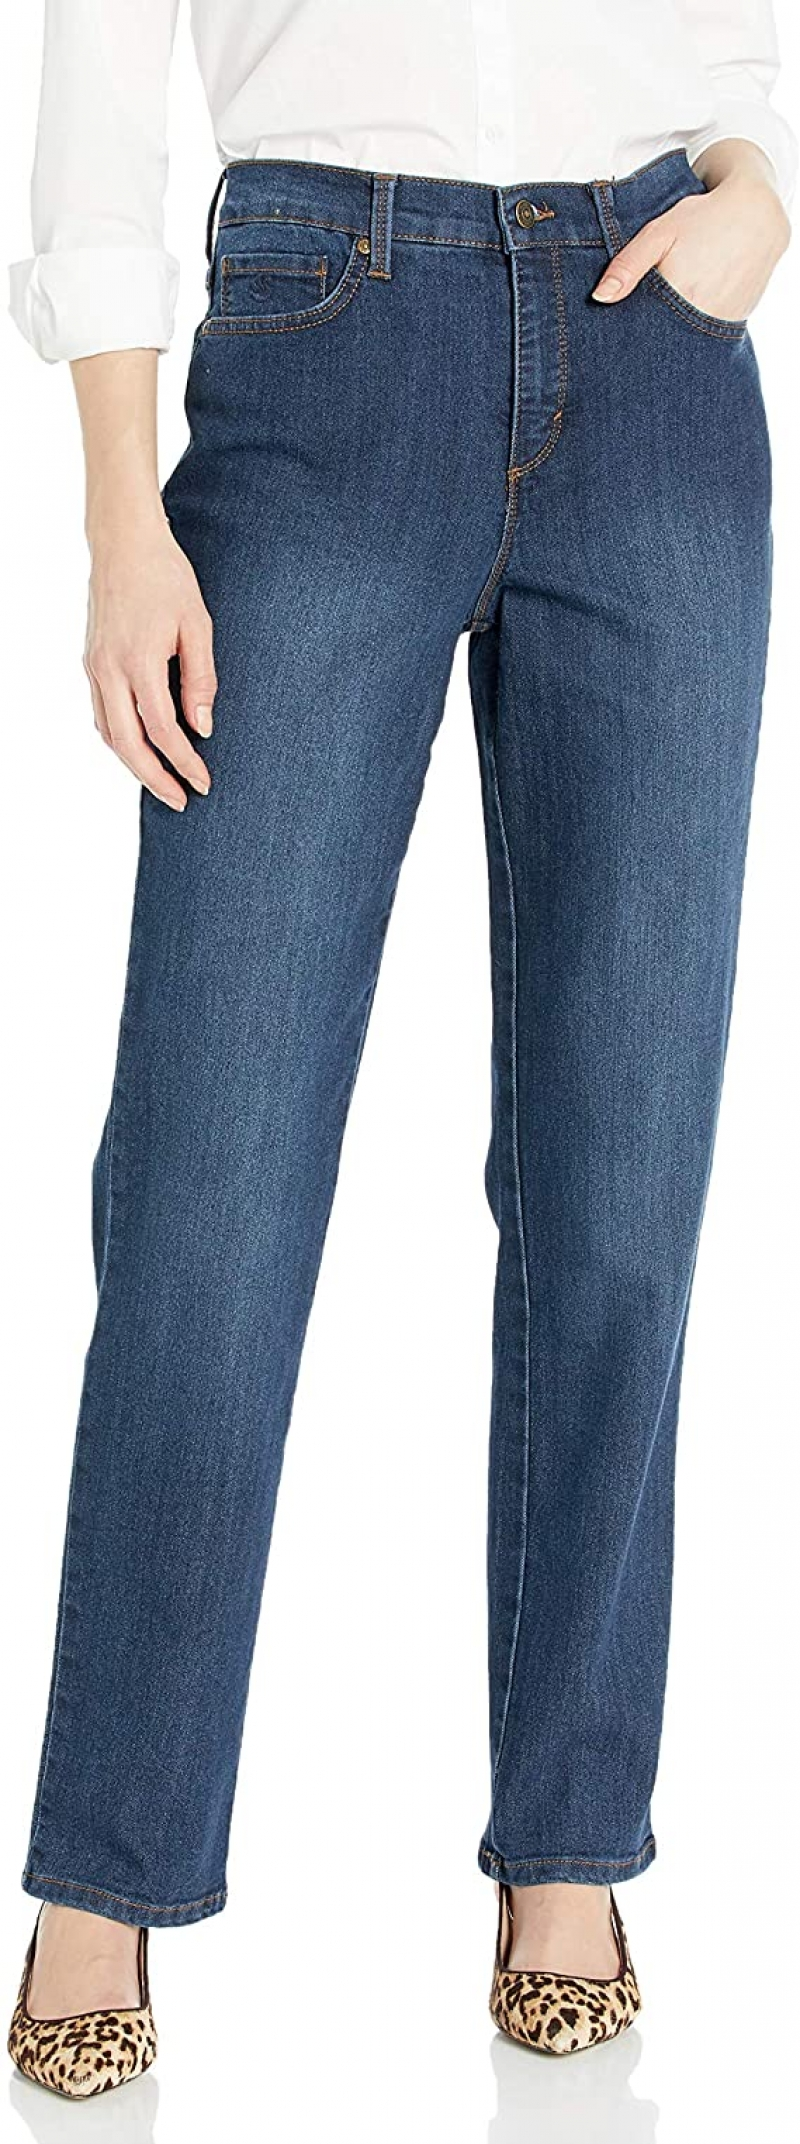 ihocon: Gloria Vanderbilt Women's Classic Amanda High Rise Tapered Jean  女士高腰牛仔褲